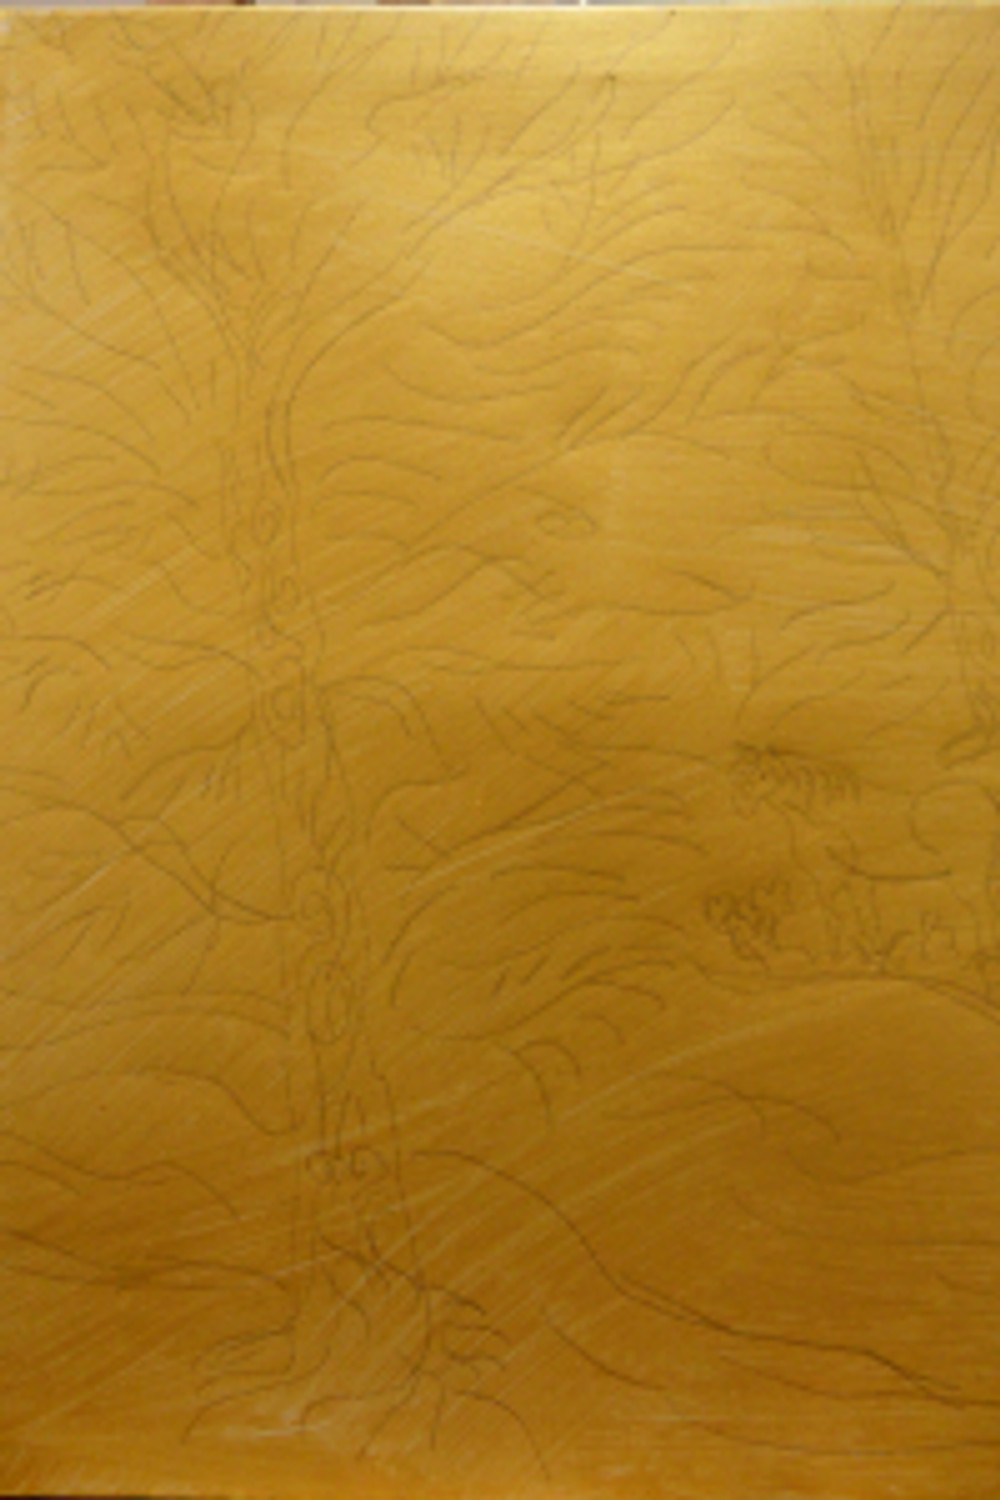 Pencil drawing on gold painted canvas